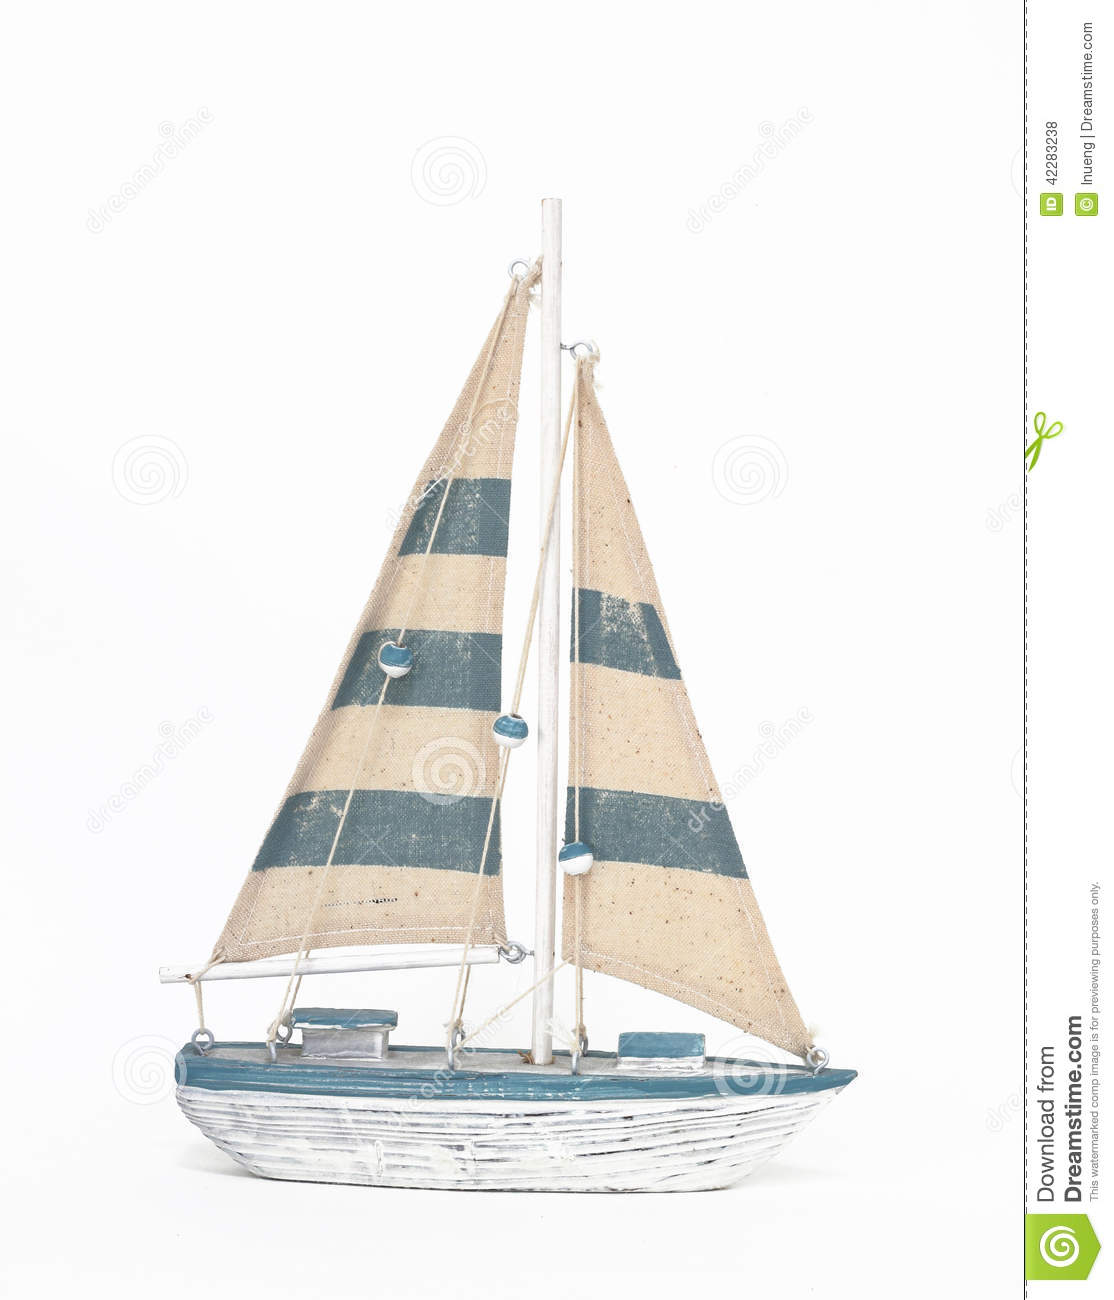 Wooden Toy Sailing Boat On White Background Stock Photo - Image: 42283238